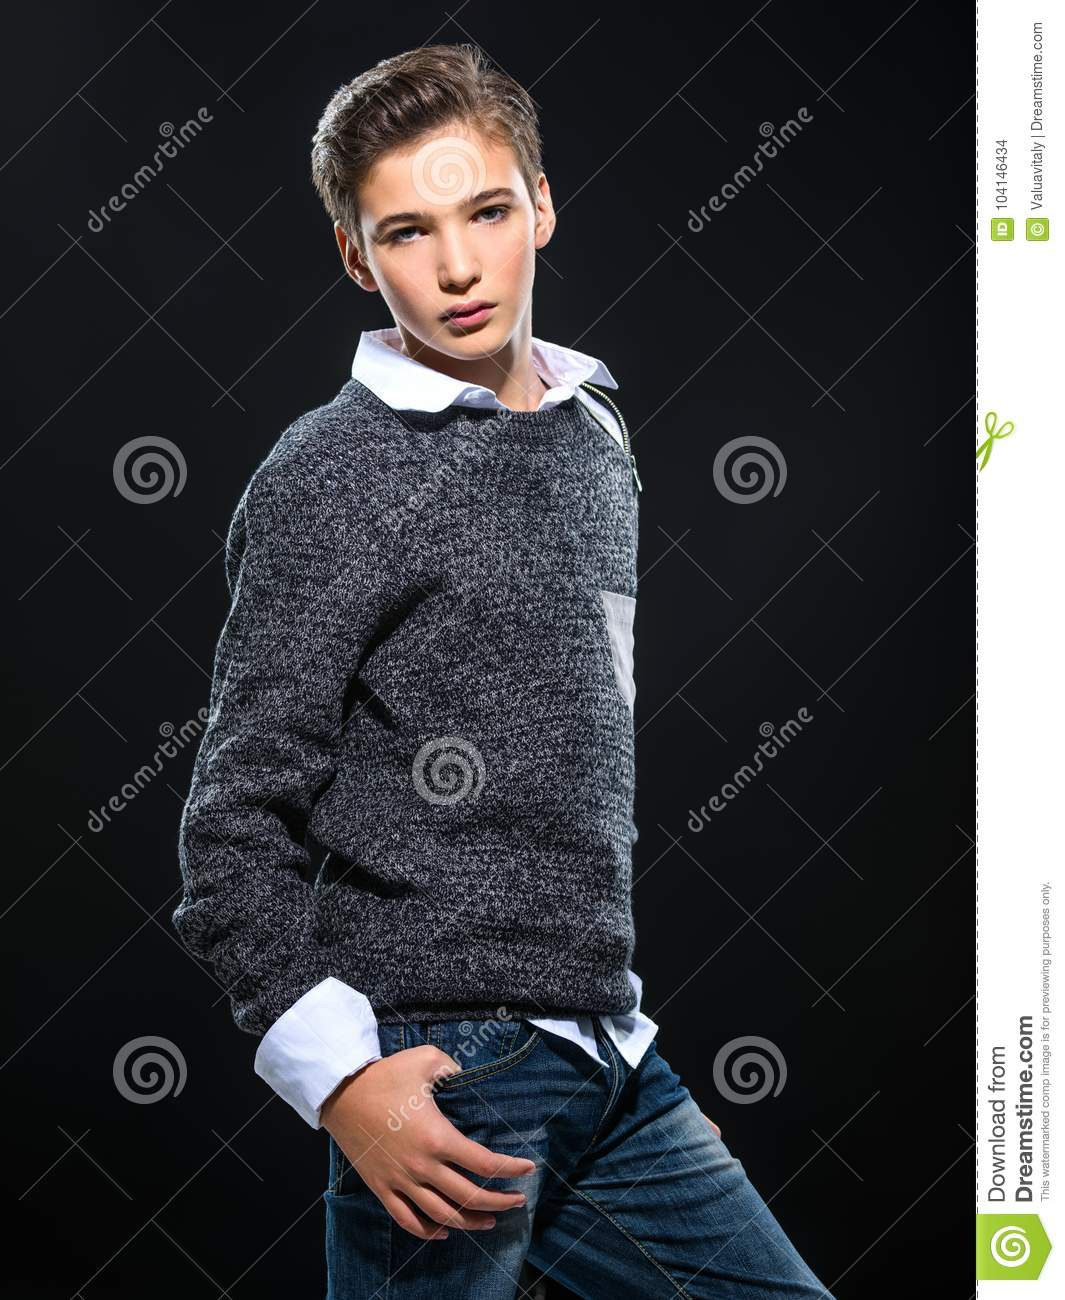 Photo Of Teenage Handsome Guy Posing At Studio Stock Photo - Image of  modern, handsome: 104146434